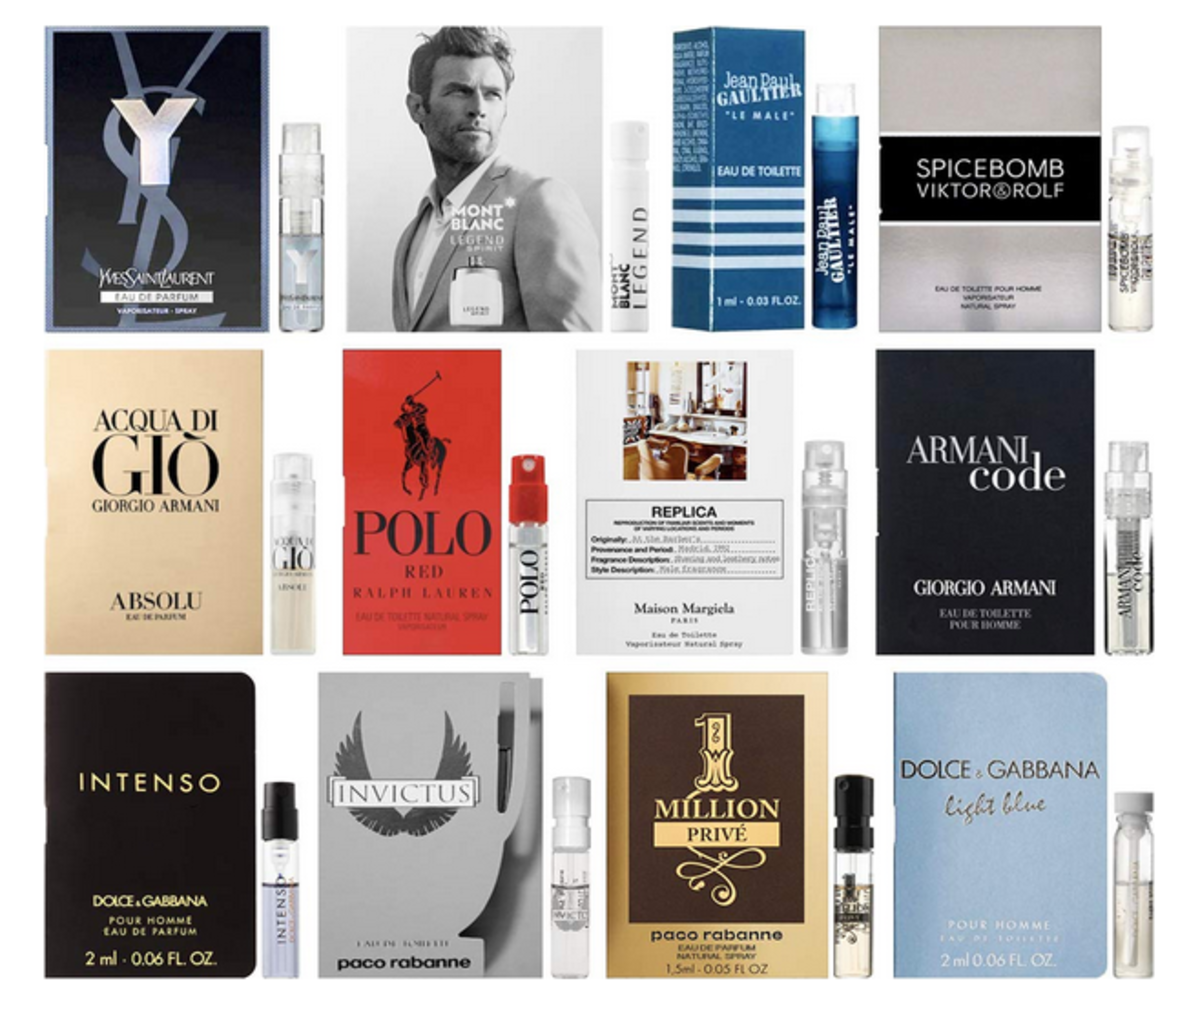 Experience designer men's fragrances for a fraction of the full-sized bottle.